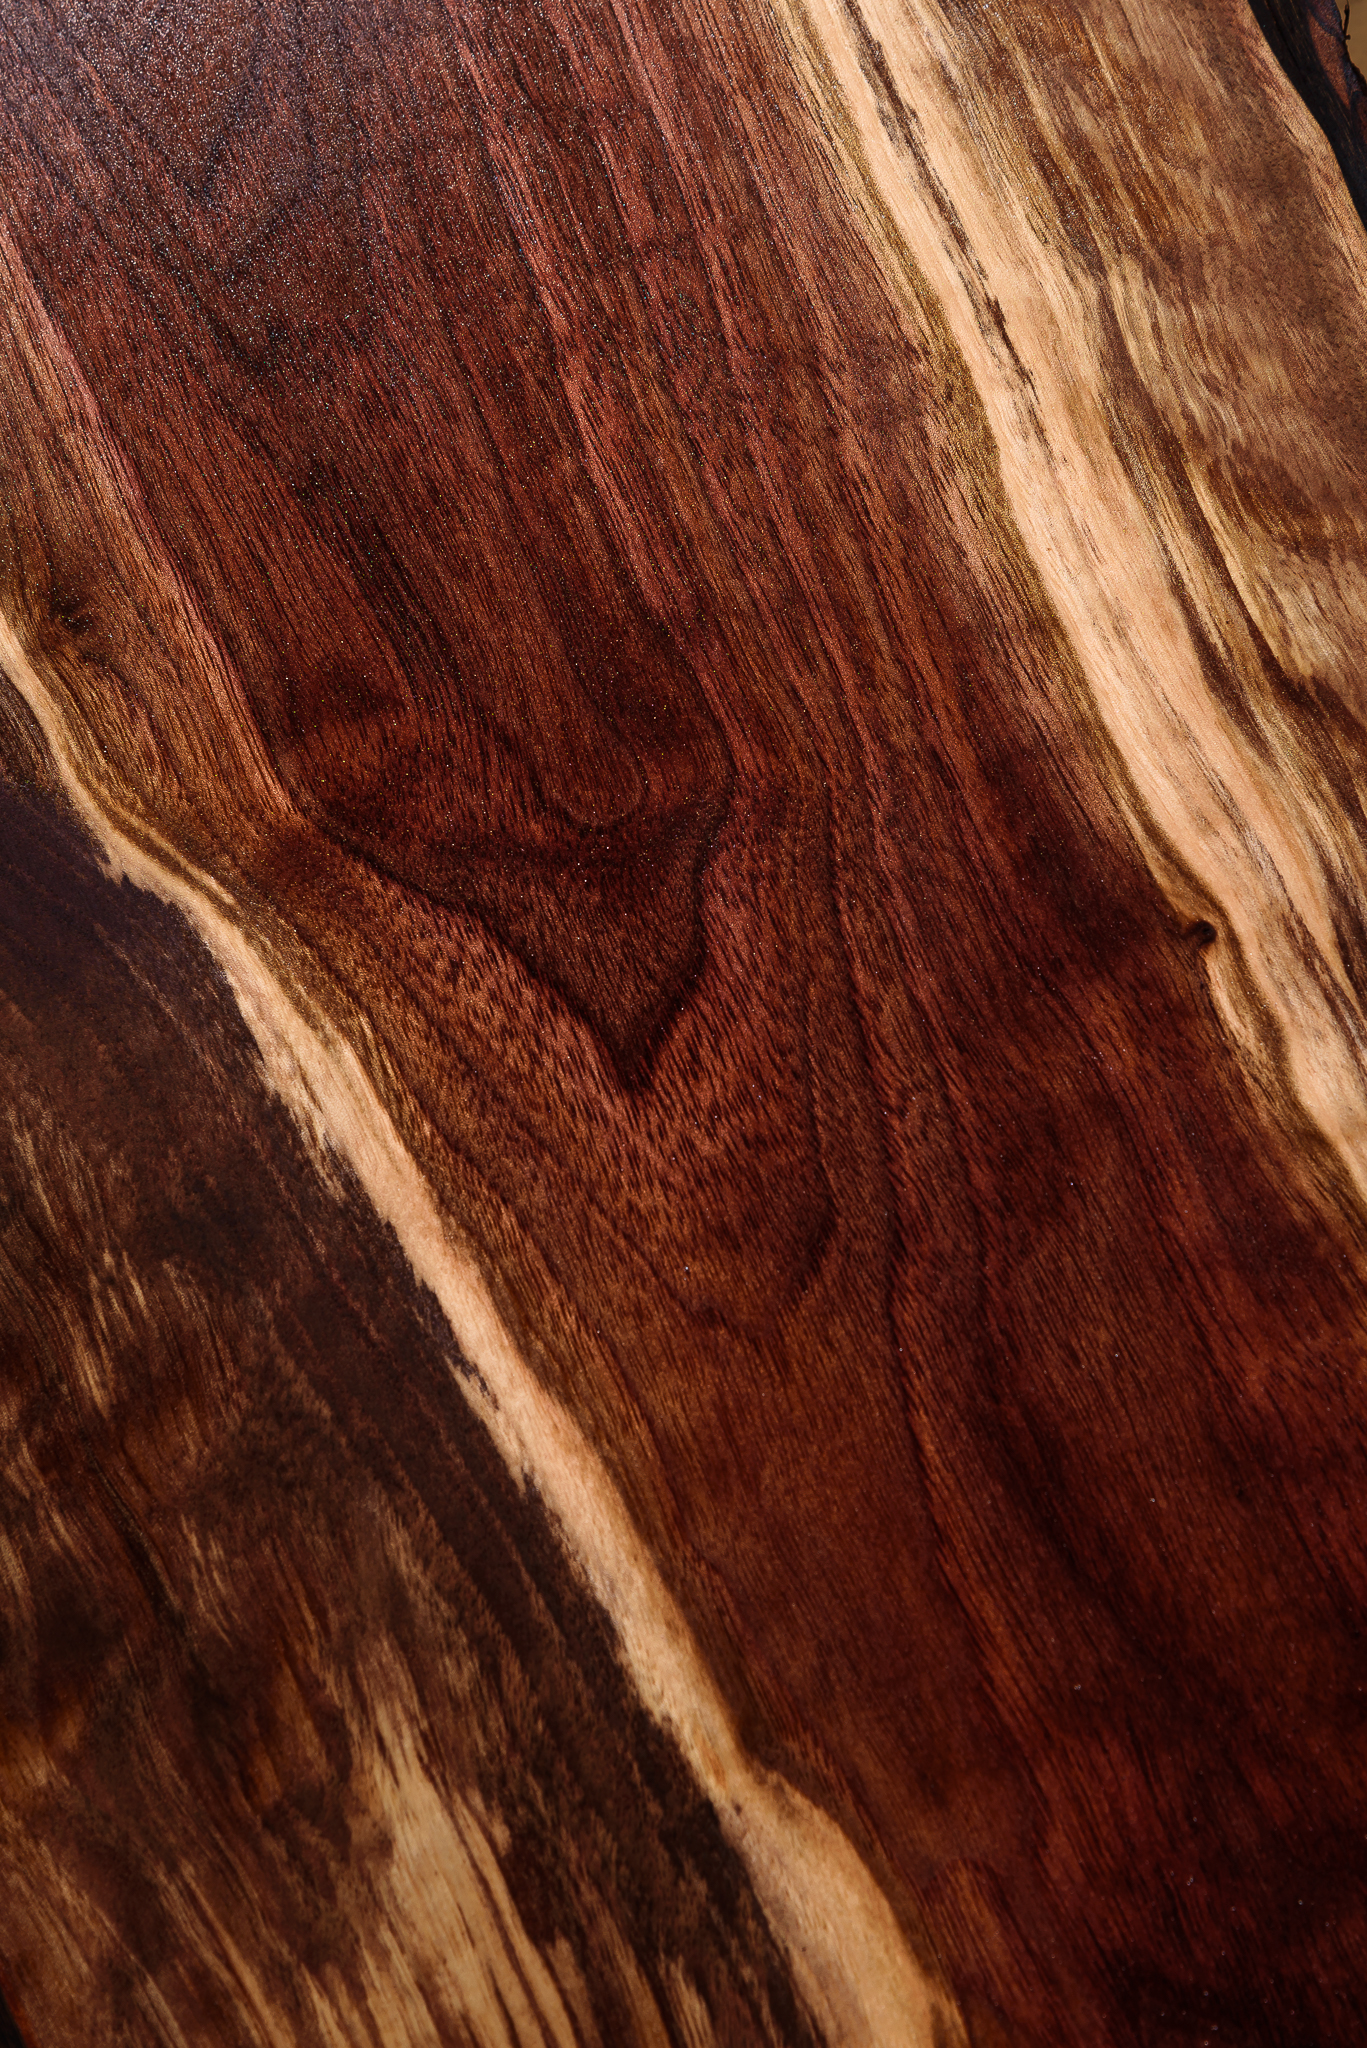 7/2/15. Day 2 and I already could barely keep on track. I was busy building furniture for the store and I could only squeexe in this image of black walnut wood grain. Lotttttts of sanding.